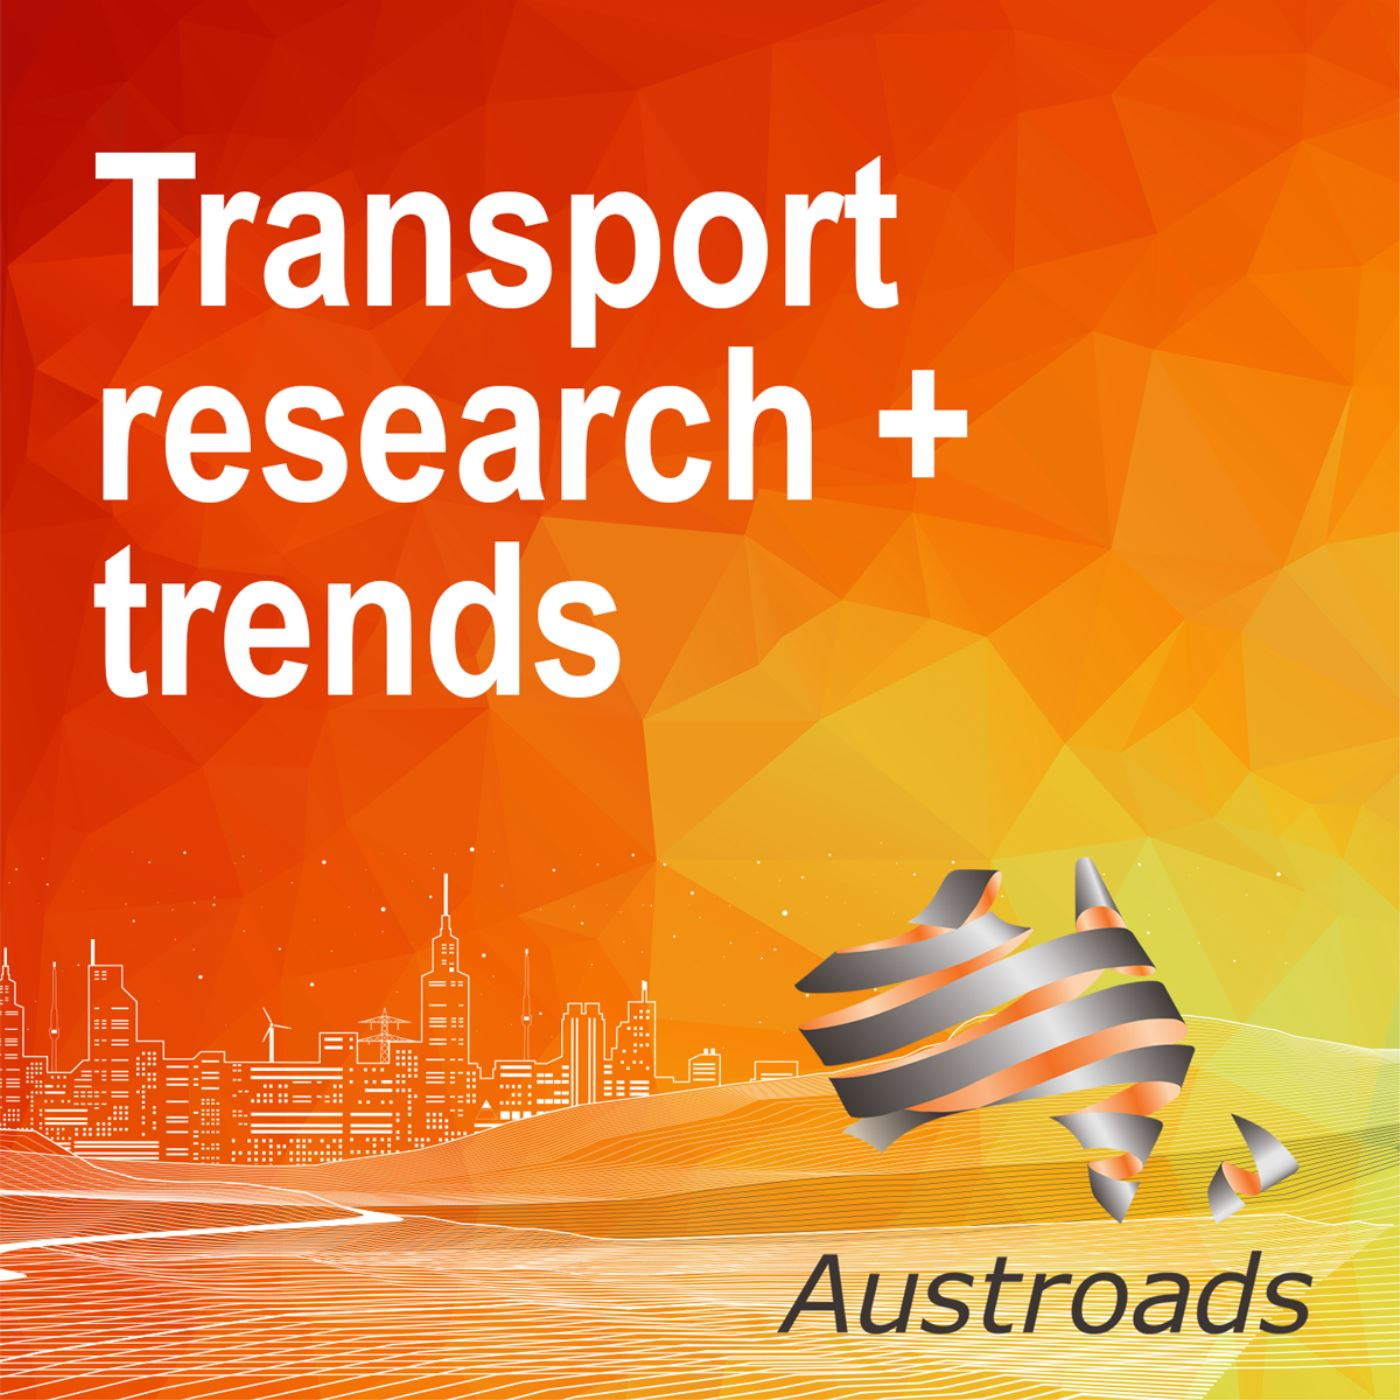 Austroads: Transport Research and Trends